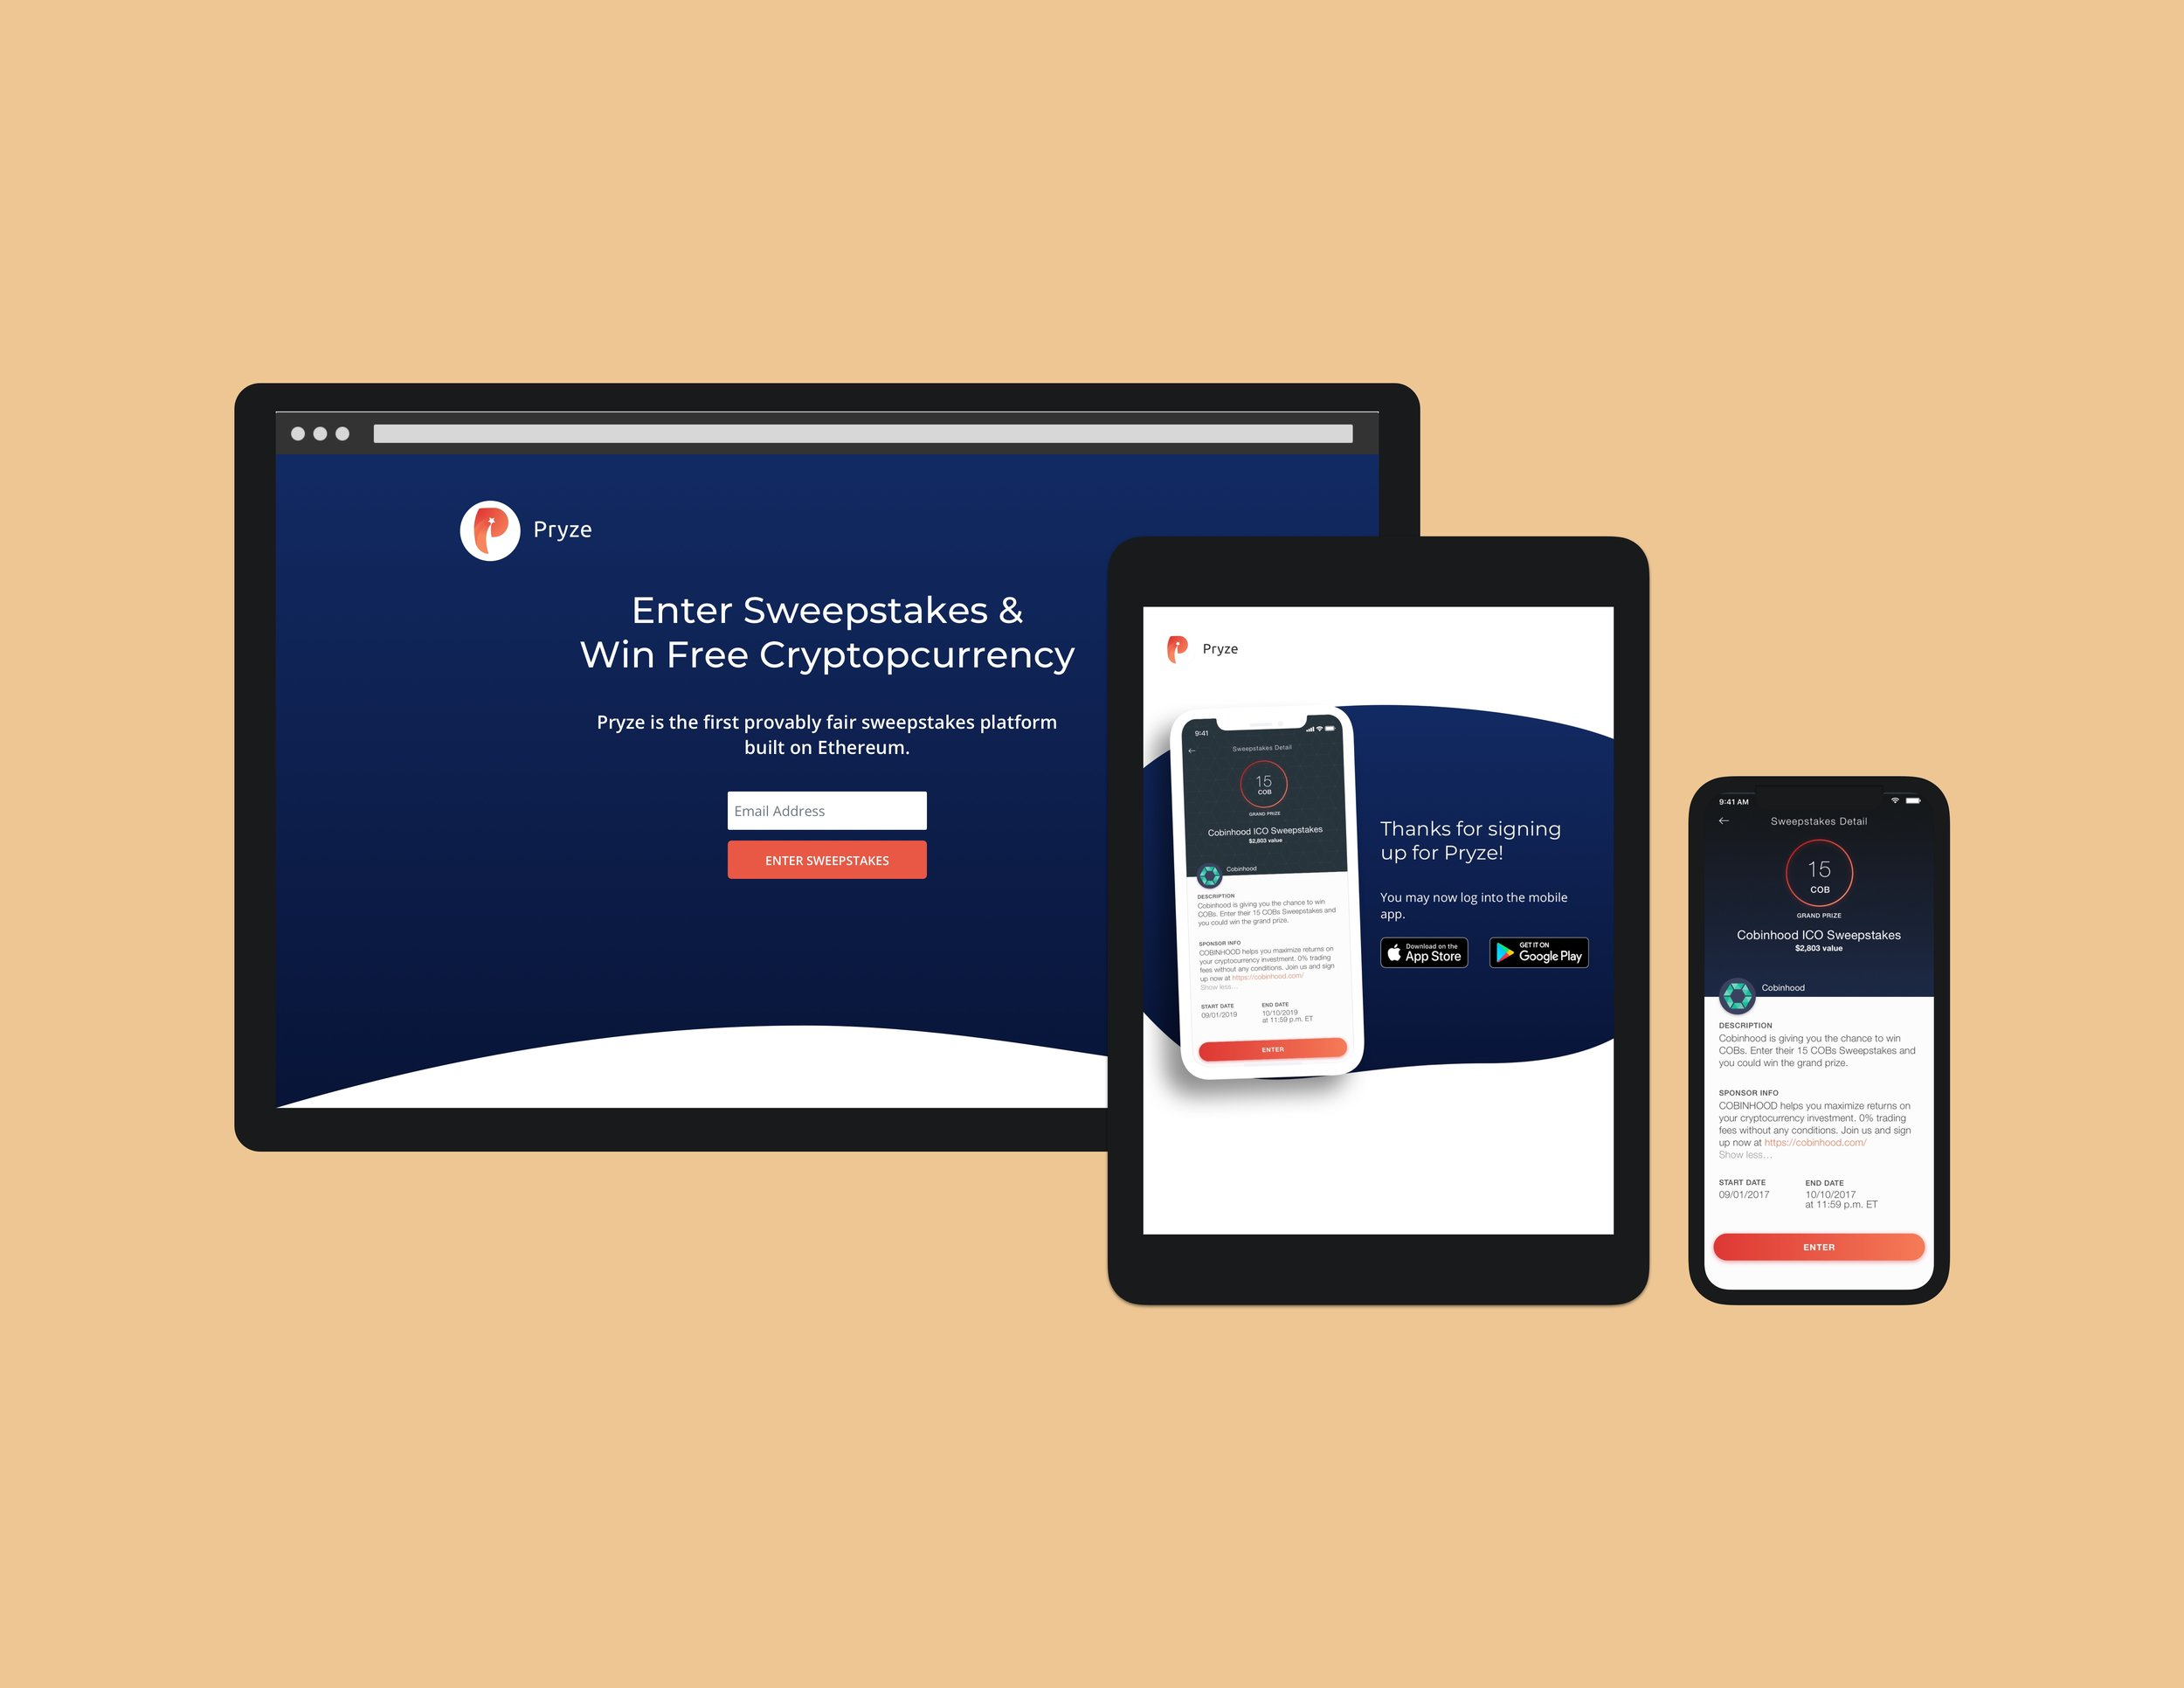 Pryze - Lead on Web, Collaborator on Mobile Appcryptocurrency sweepstakes app built on blockchain